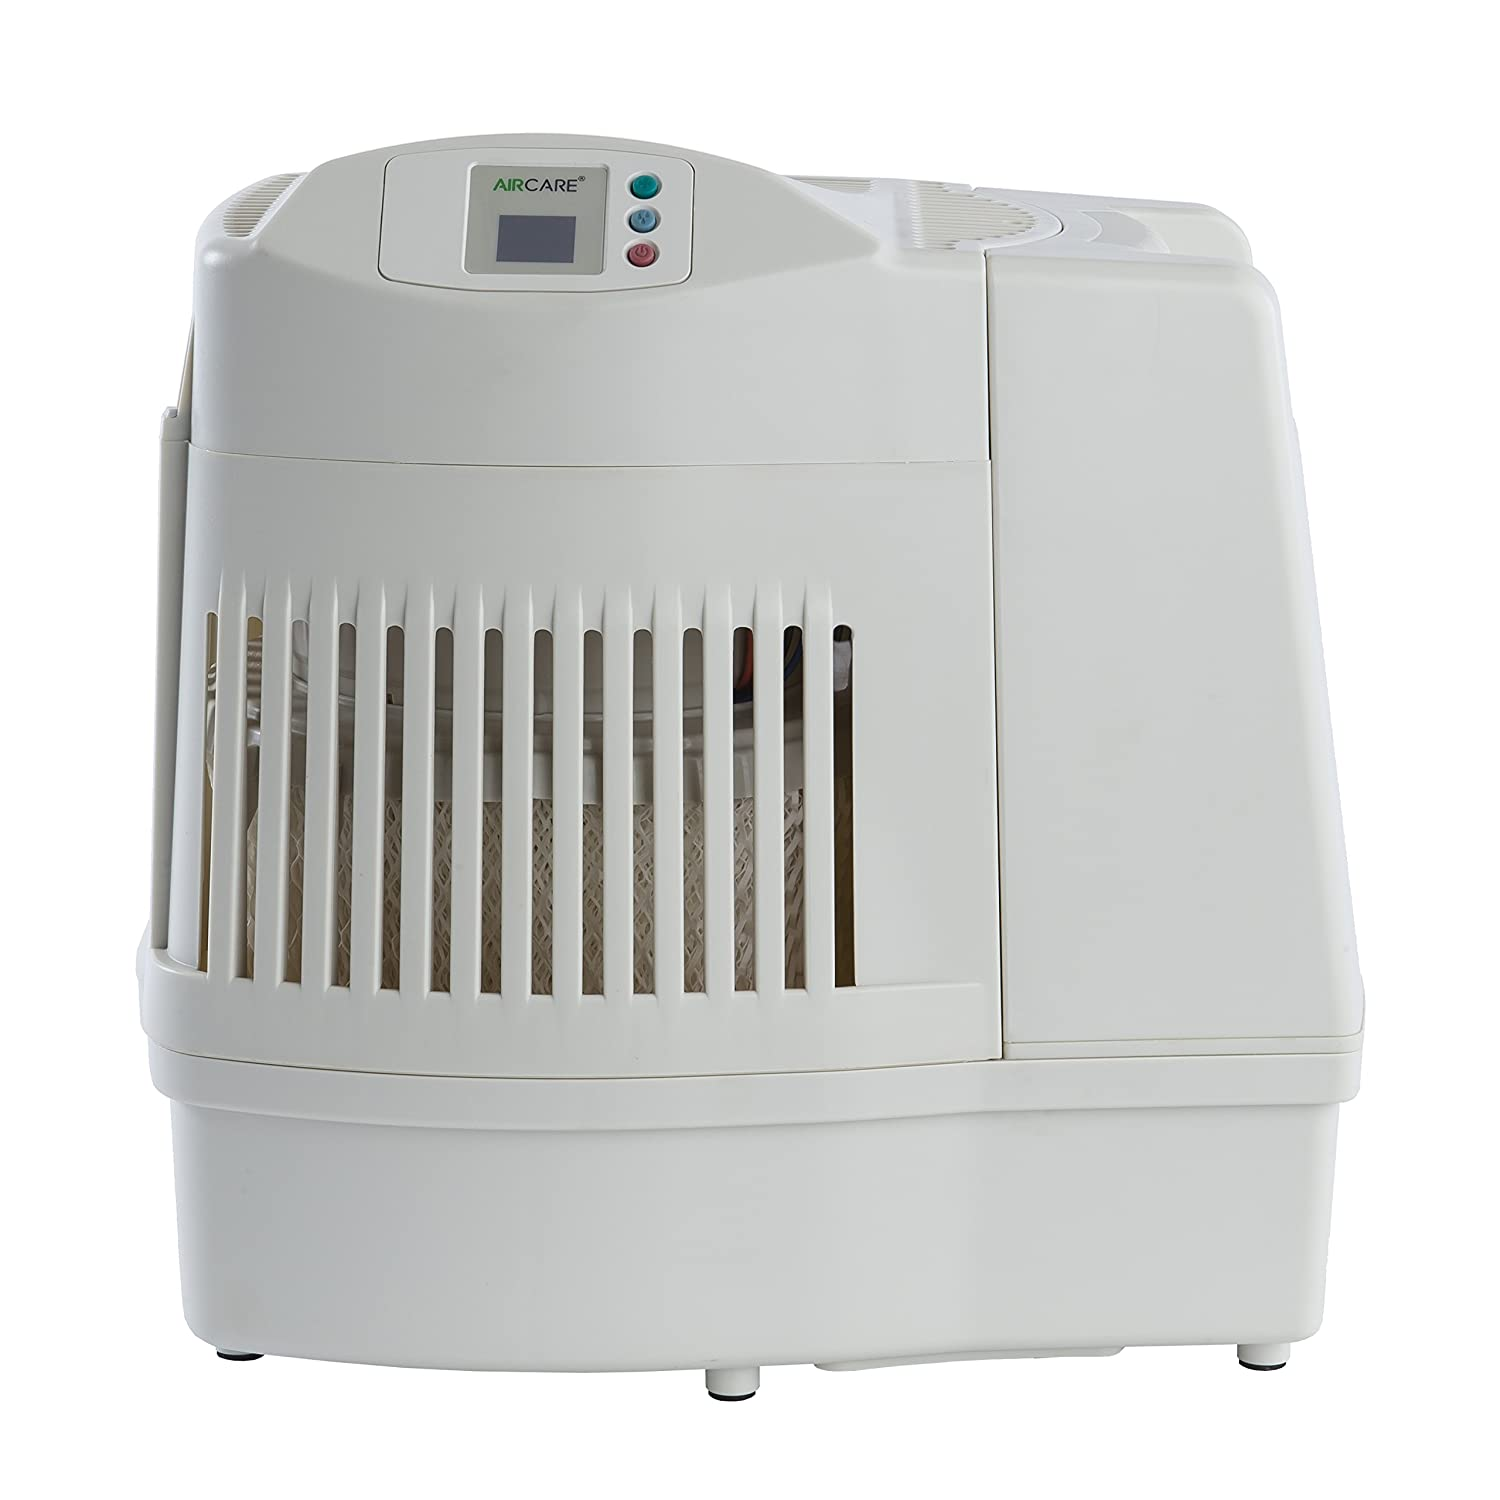 AIRCARE MA0800 Digital Whole-House Console-Style Evaporative Humidifier, White Essick Air Products